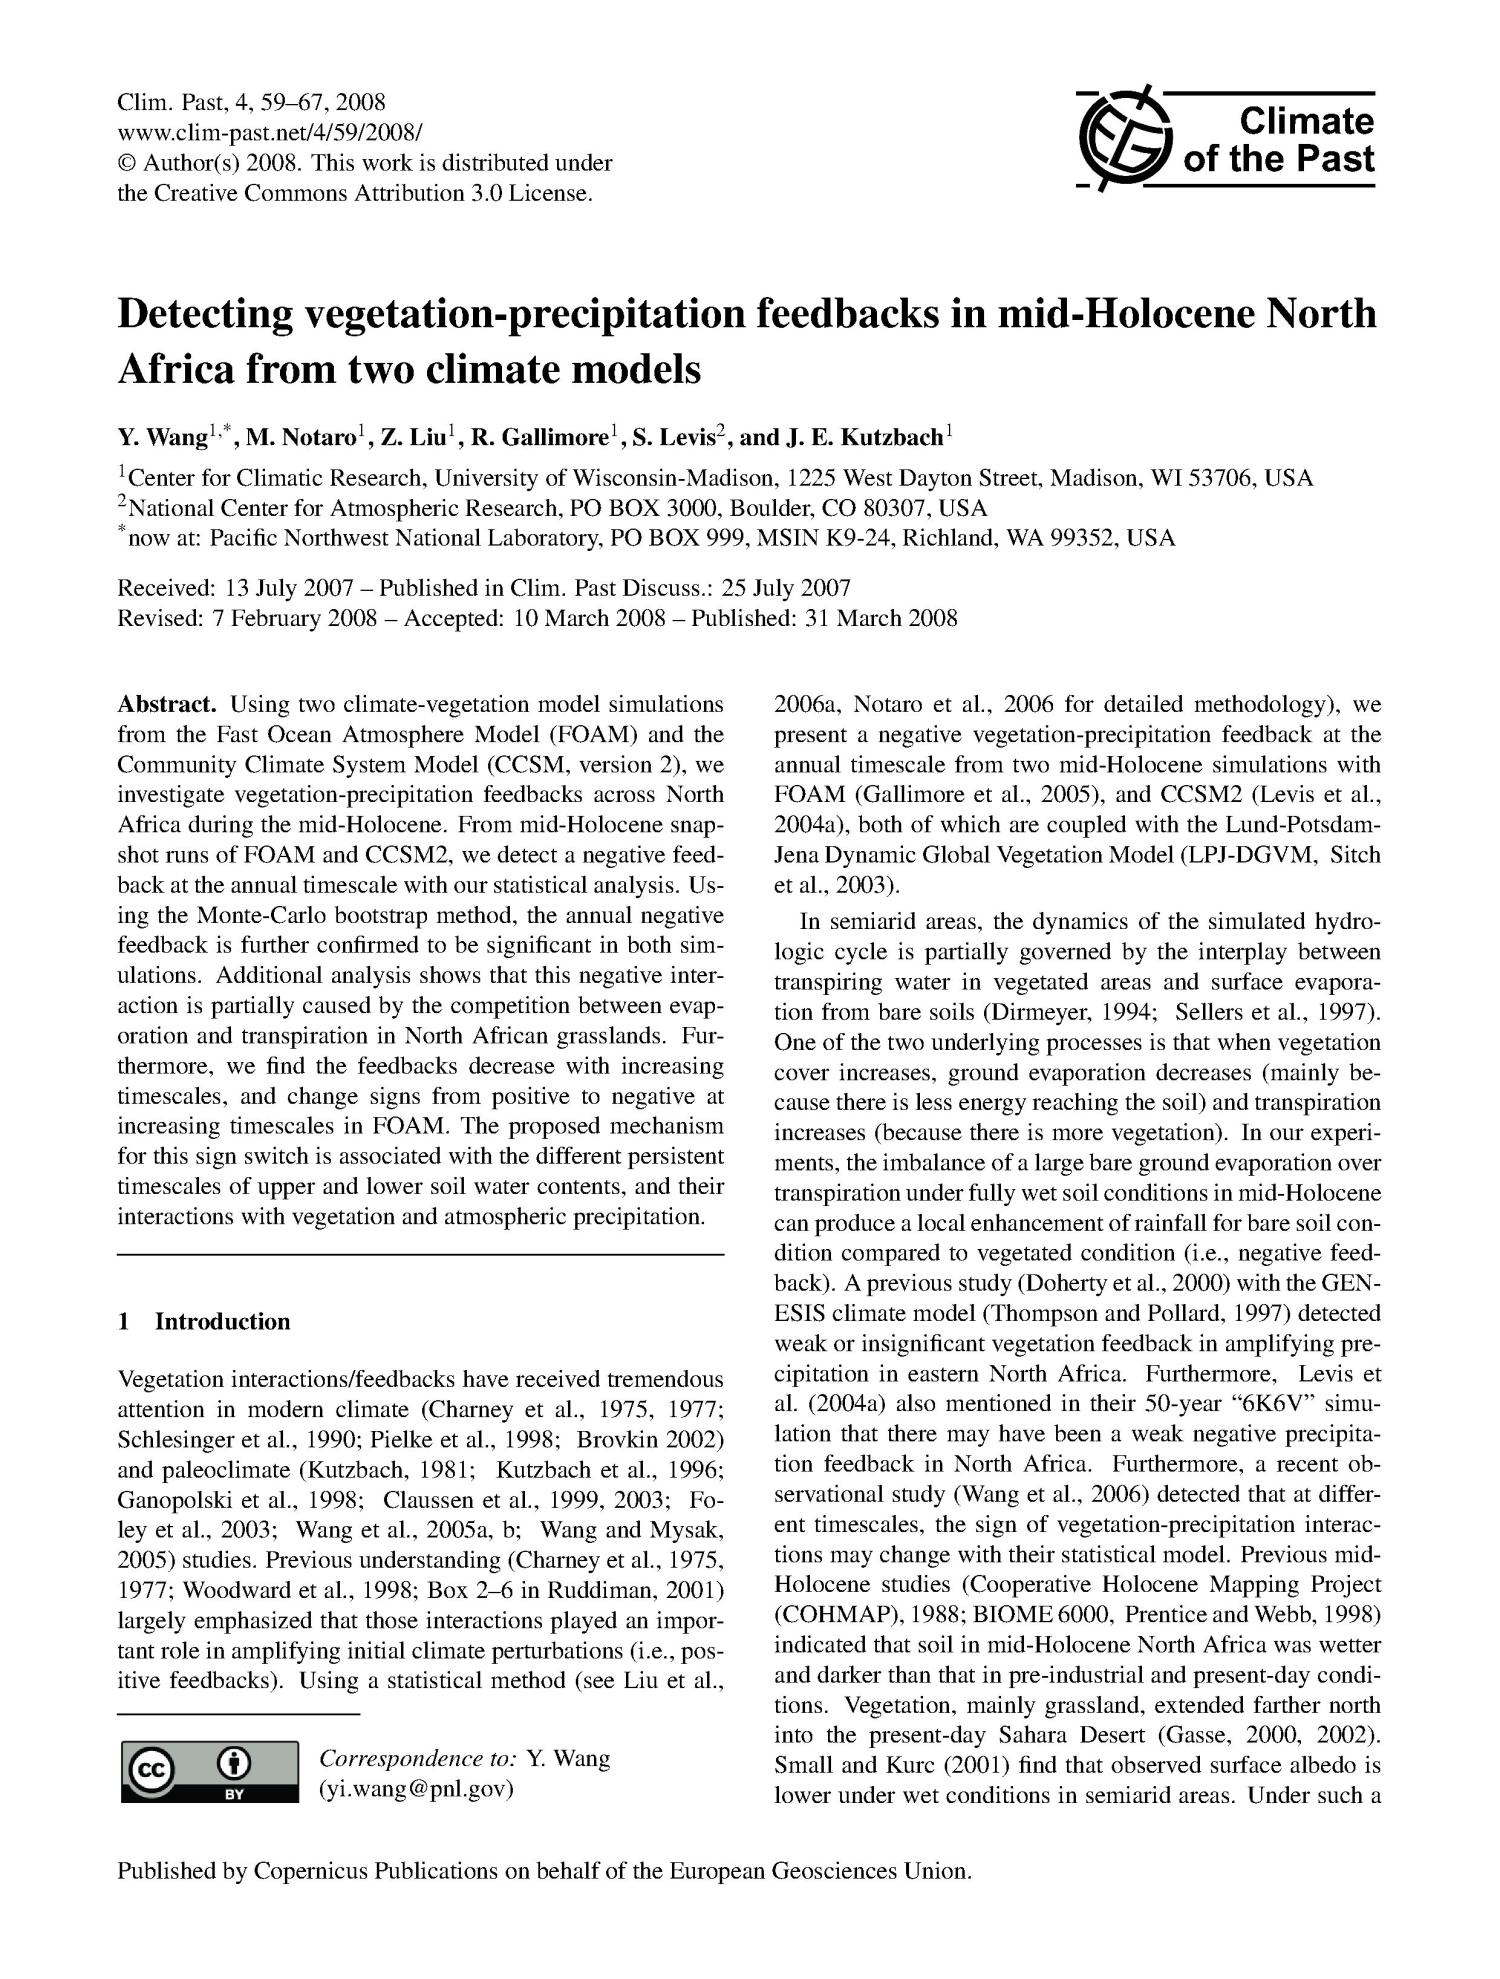 Detecting vegetation-precipitation feedbacks in mid-Holocene North Africa from two climate models                                                                                                      [Sequence #]: 1 of 9